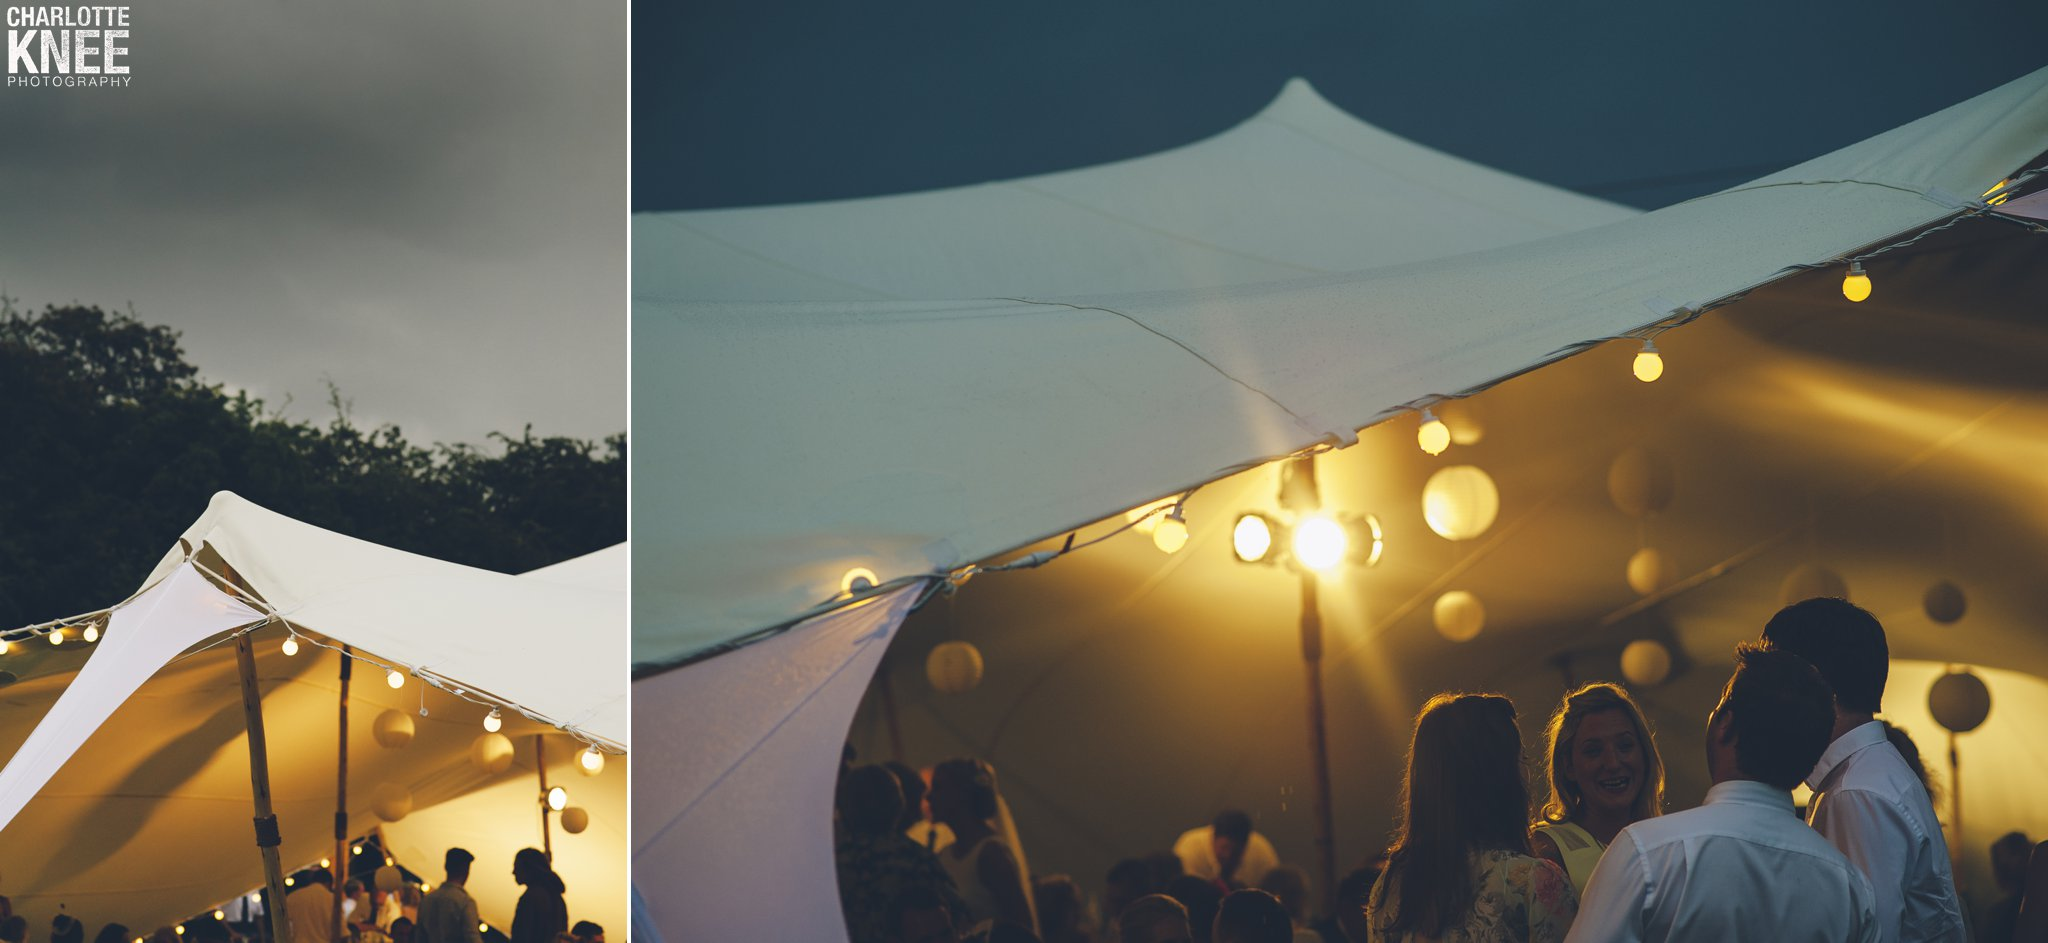 4Elements Tents Stretch Tent Kent Wedding Charlotte Knee Photography_0013.jpg & Charlotte Knee Photography » Kent lifestyle photographer with a ...